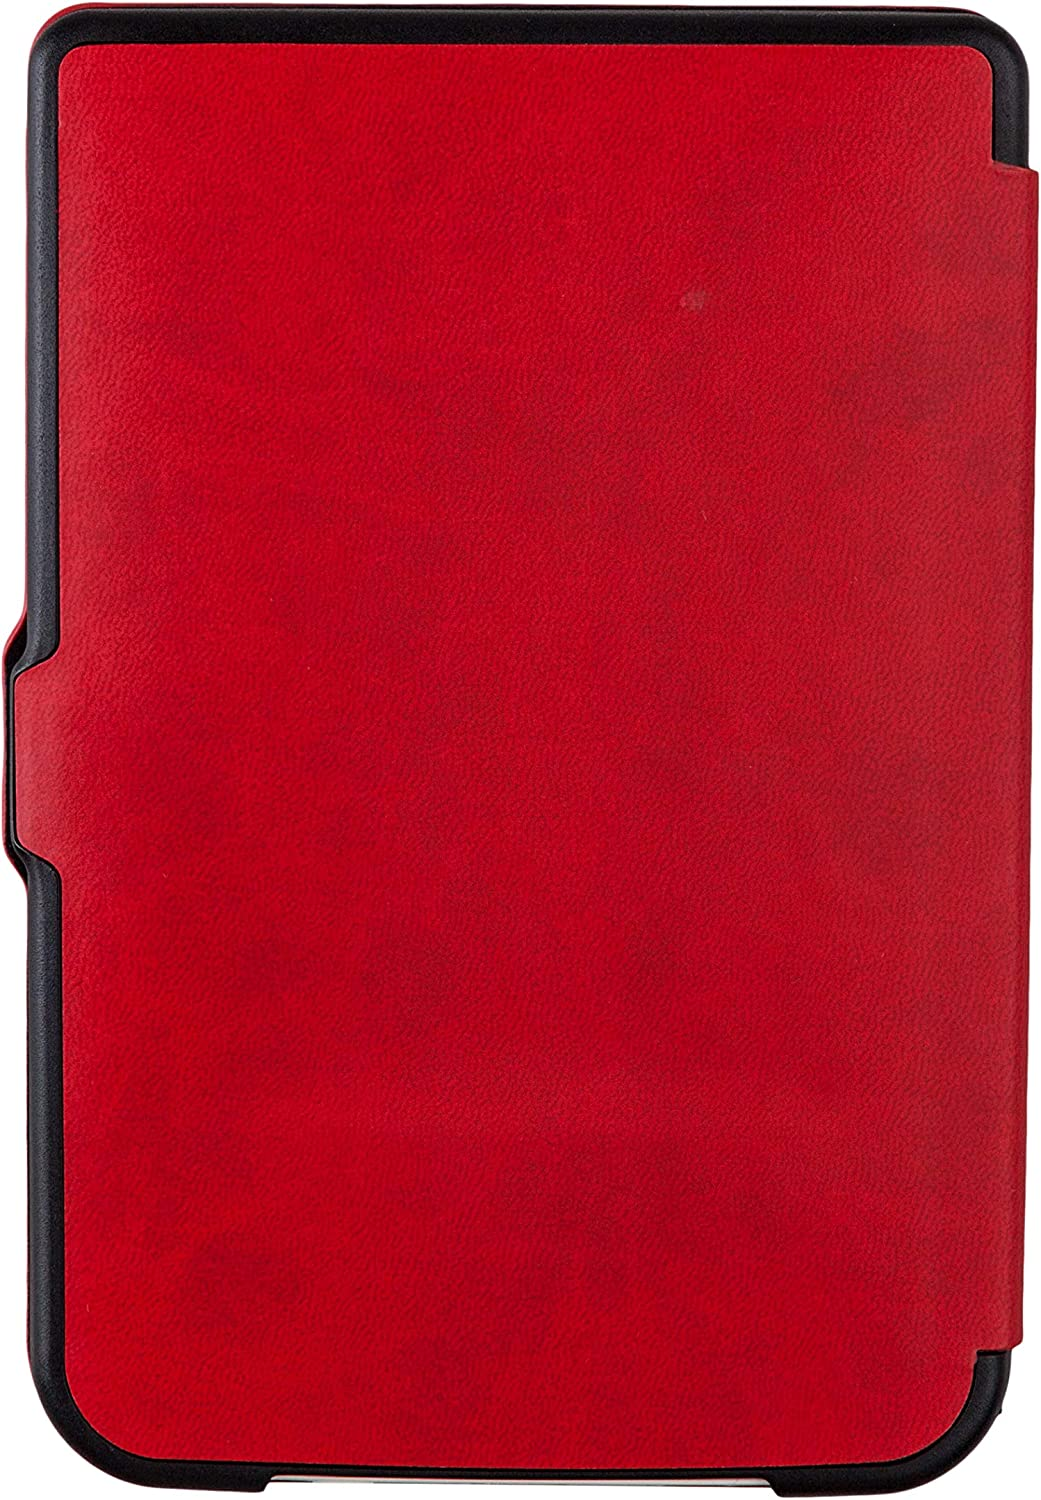 PocketBook Cover Shell eBook Cover Rot Passend f/ür Display-Gr/ö/ße Kompatible Ger/äte Touch Lux 3 15,2 cm Touch Lux 6